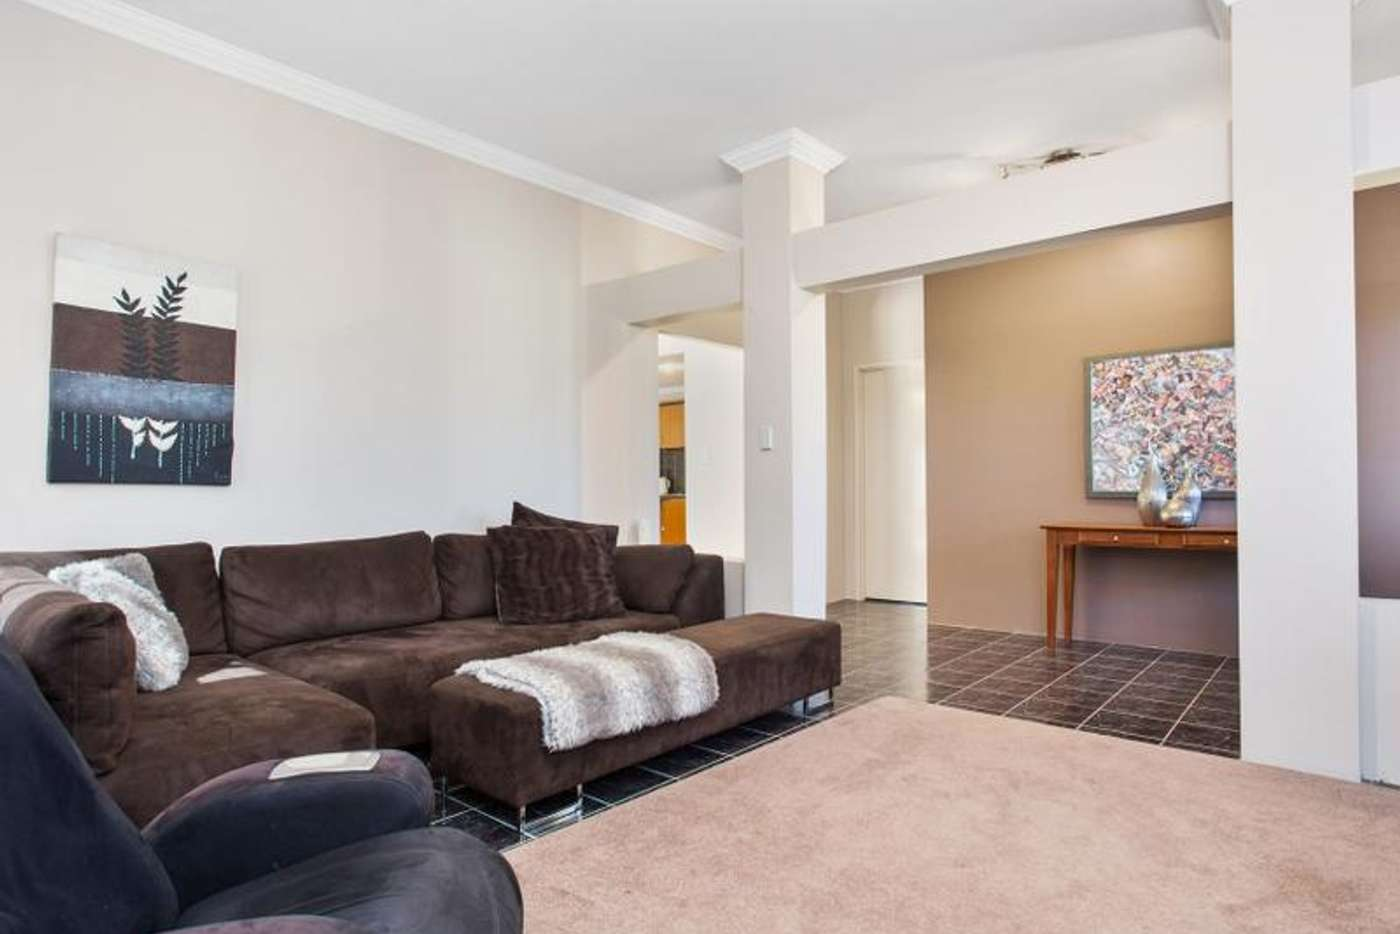 Sixth view of Homely house listing, 10 The Pines Grove, Jandakot WA 6164